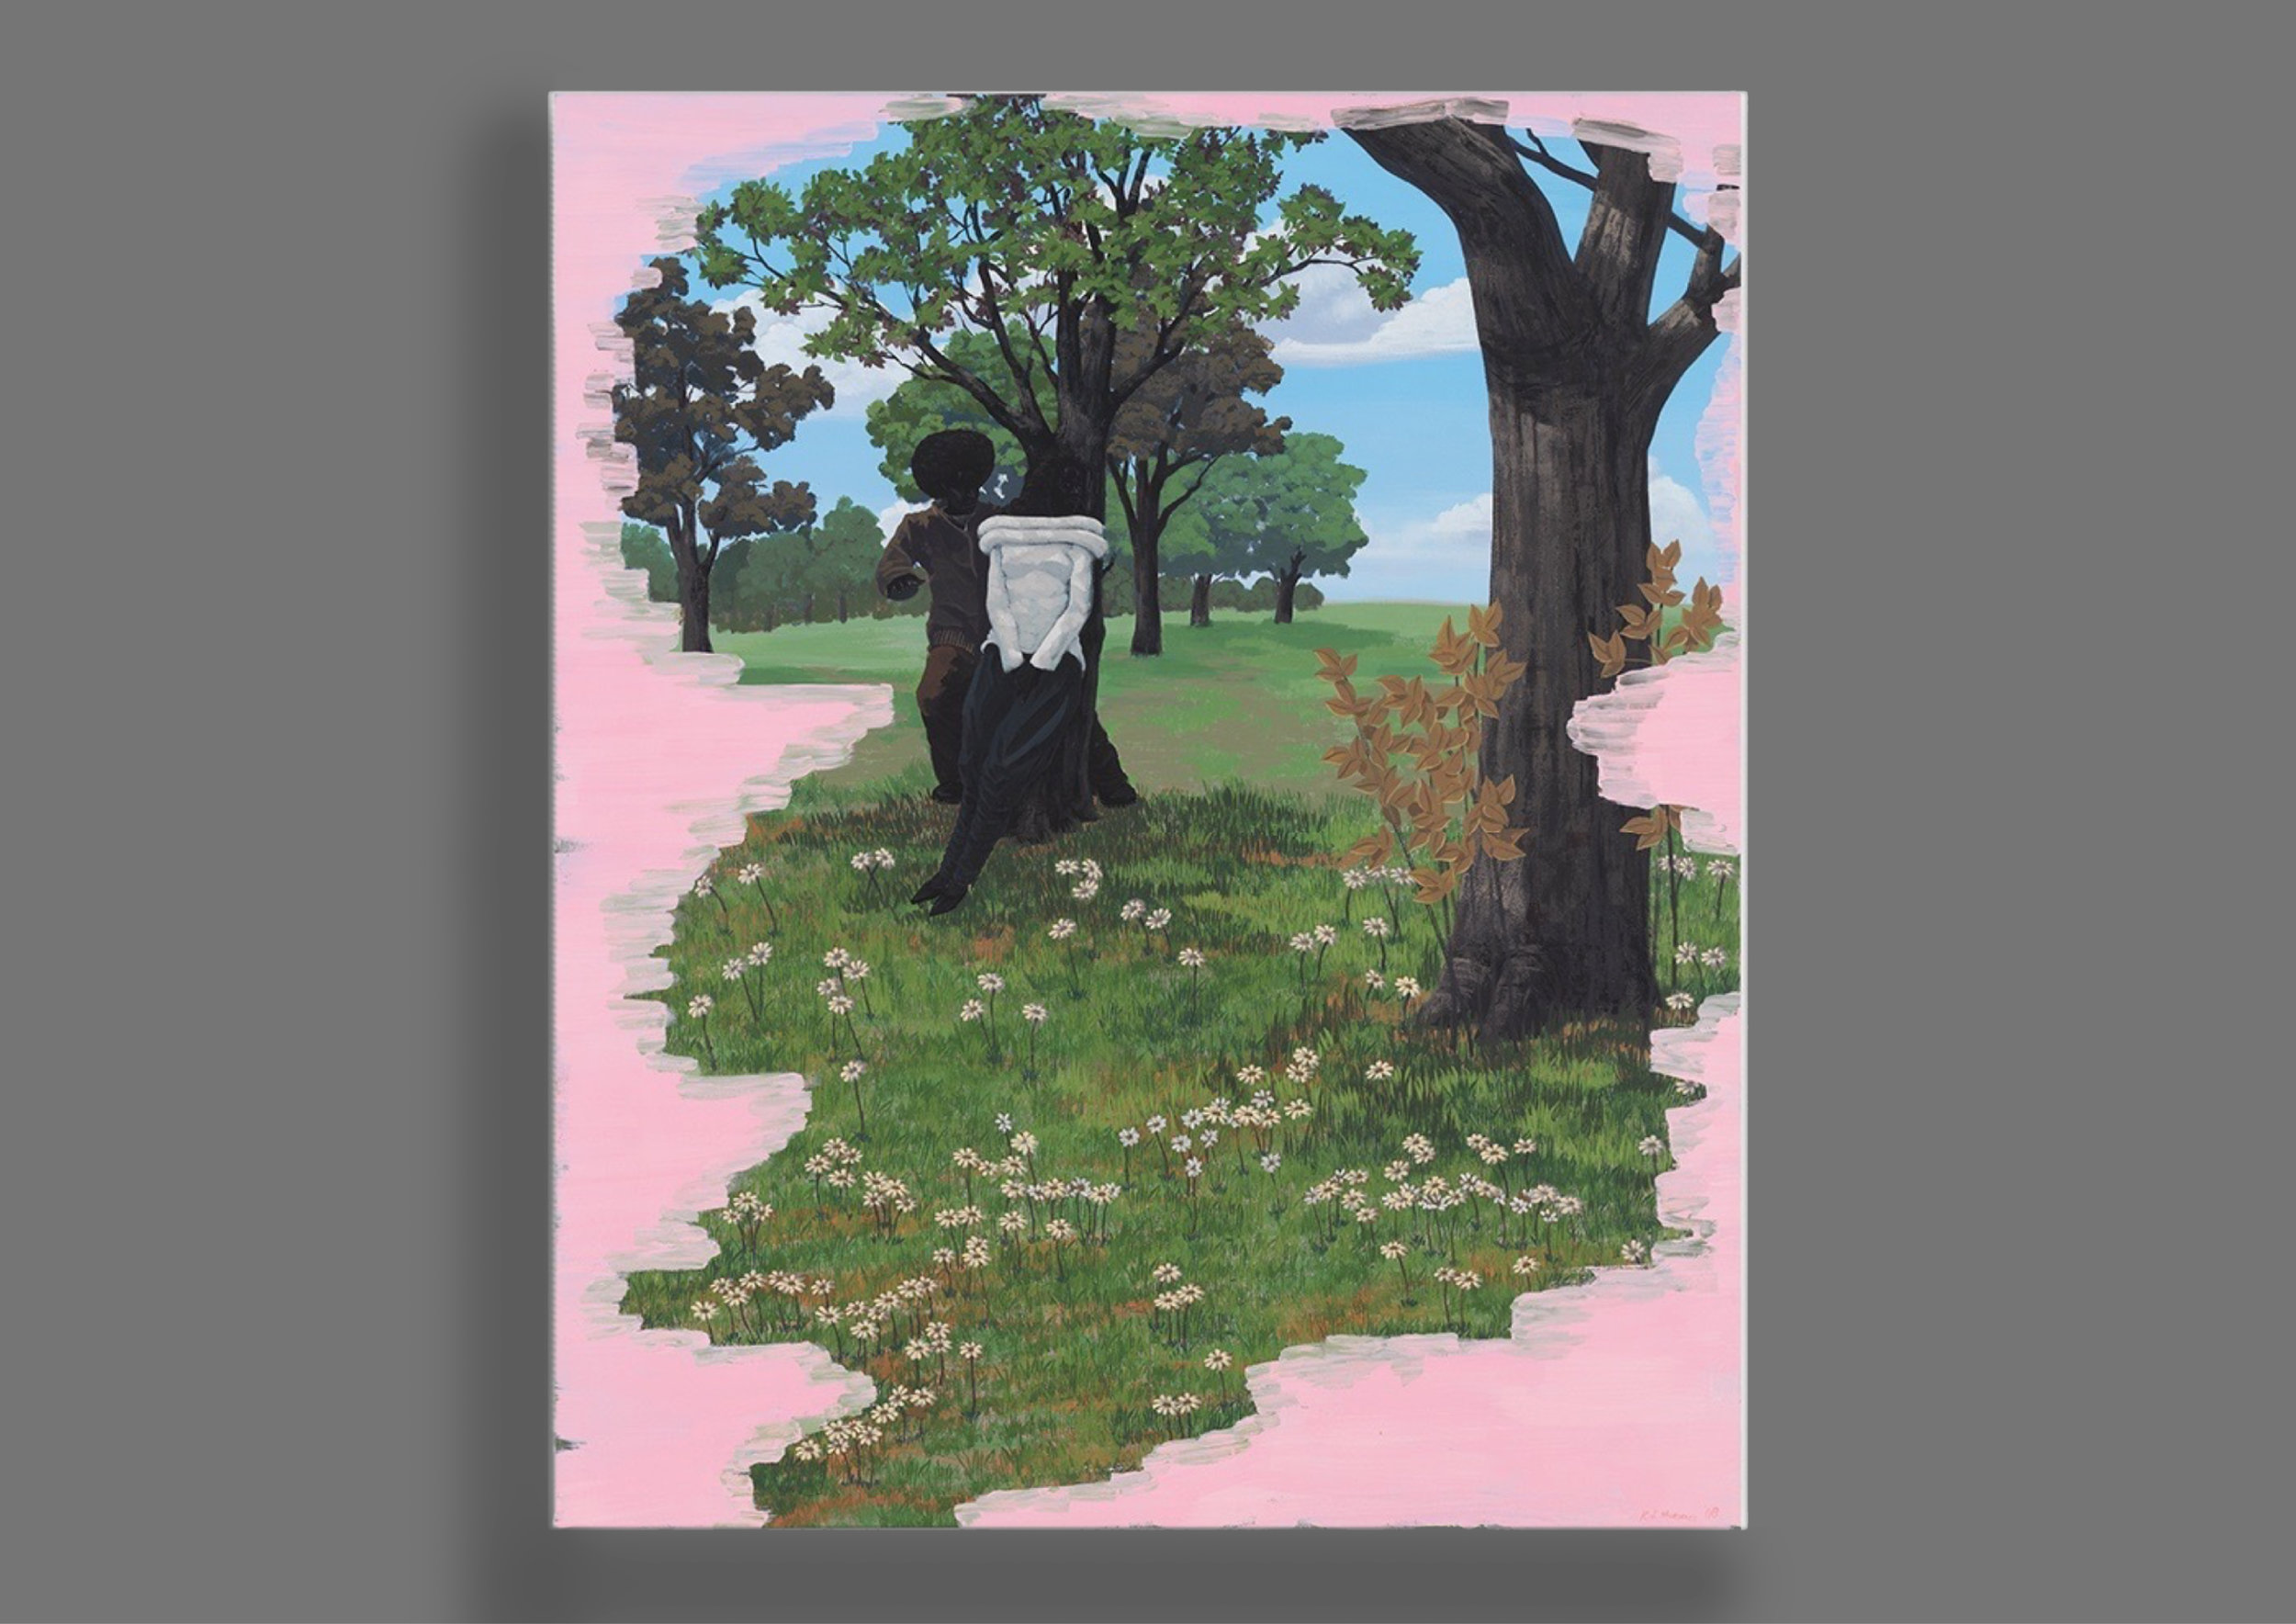 Kerry James Marshall  (Art Basel), the current it-boy of the art world after having broken the world auction record. Here's a breathtaking work on PVC panel.